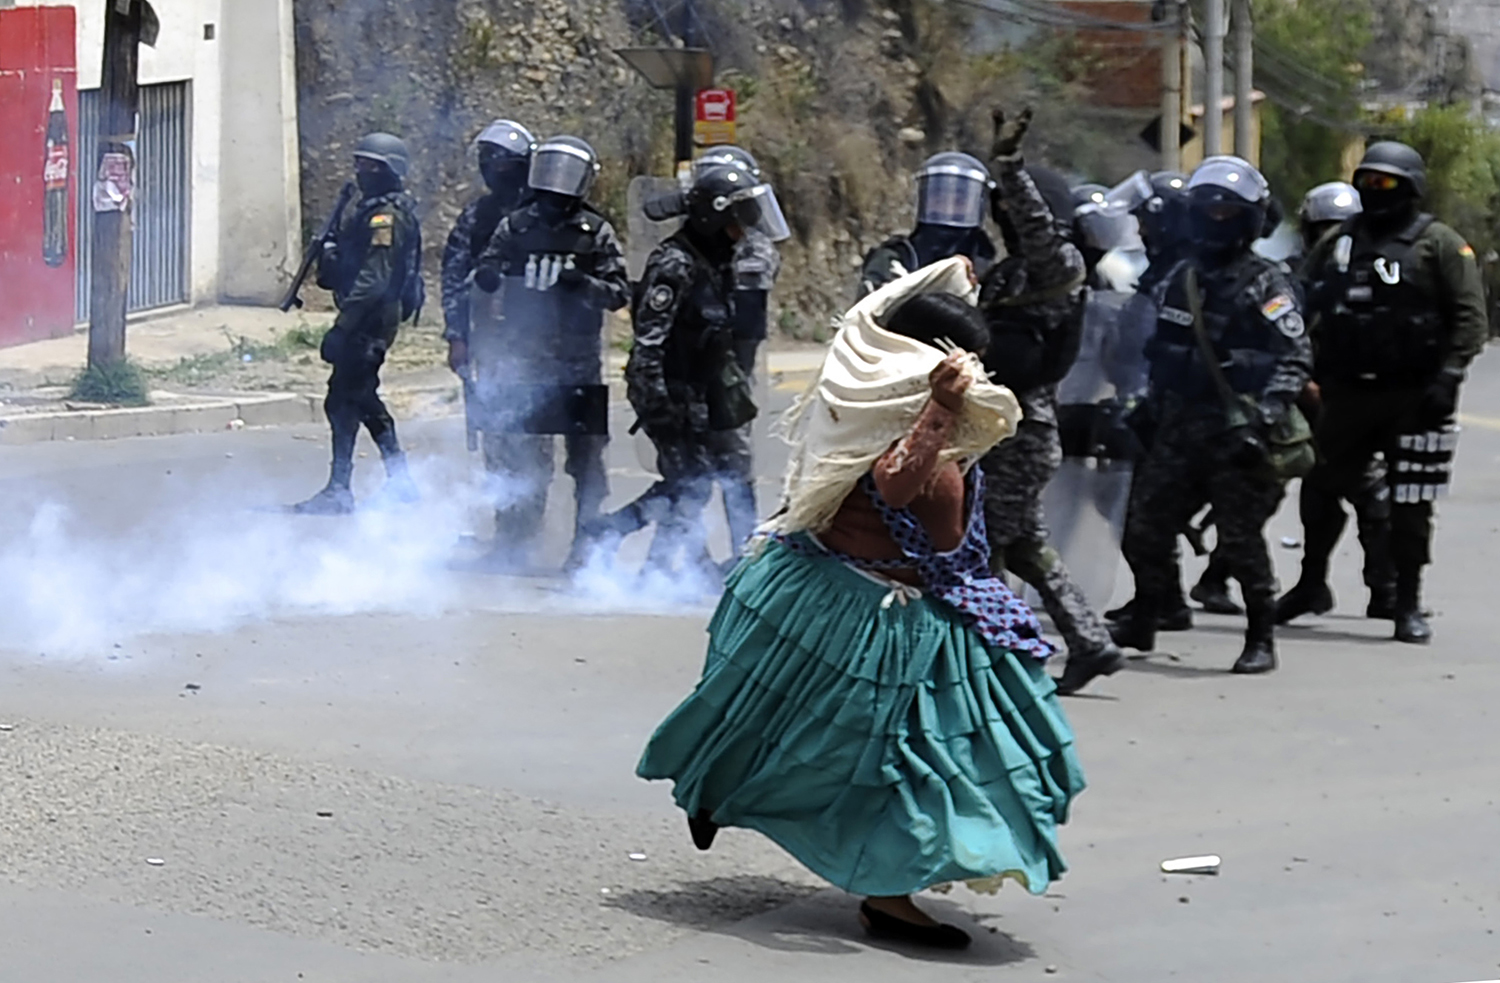 Riot police fire tear gas as an indigenous woman protests against a civic strike triggered by the result of the Oct. 20 election run in La Paz, Bolivia, on Oct. 29. JORGE BERNAL/AFP via Getty Images